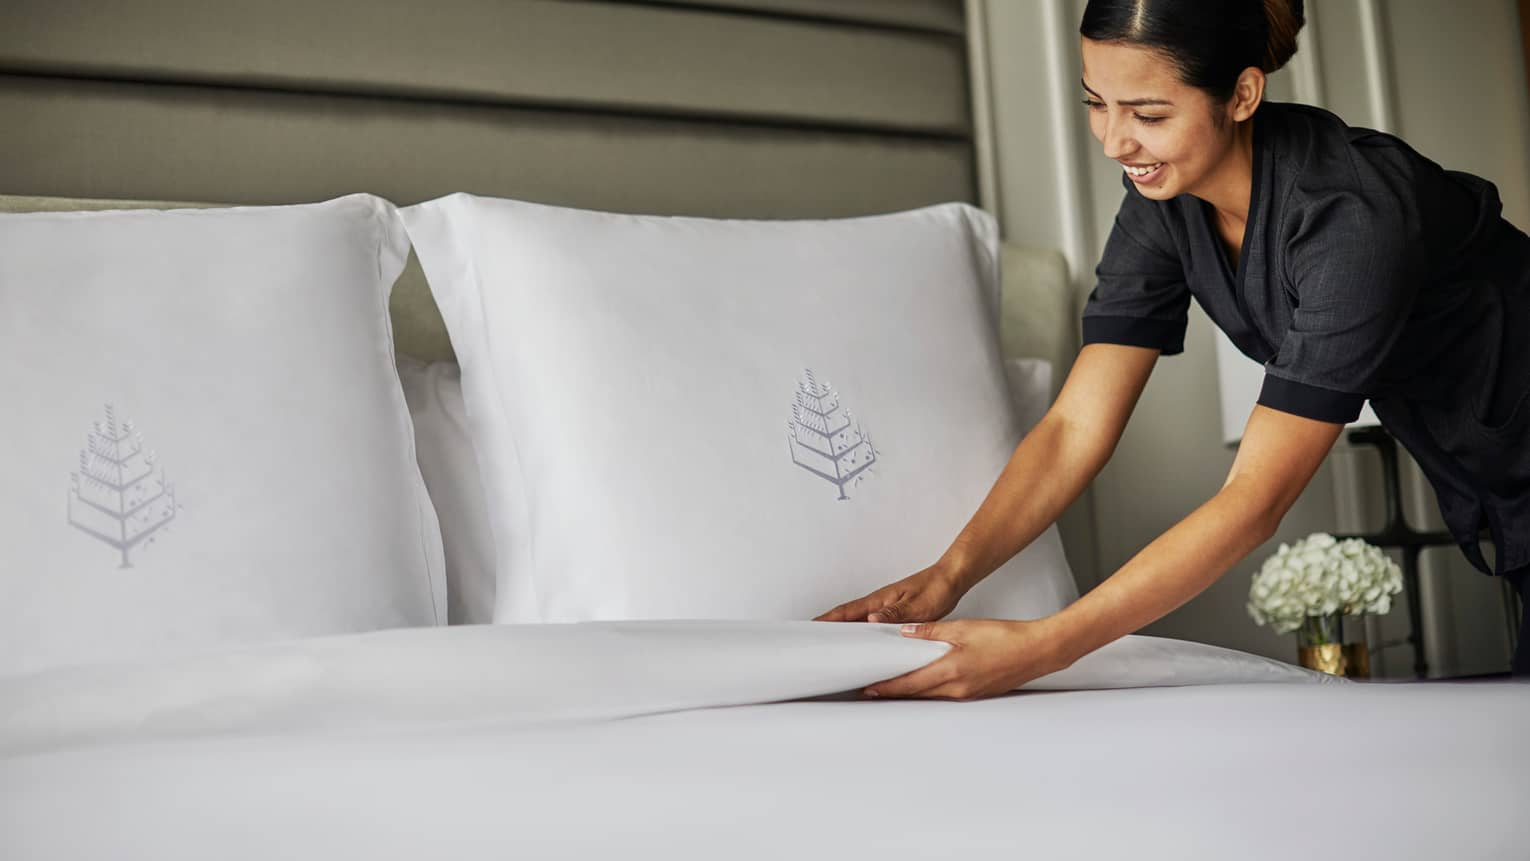 Hotel housekeeper smooths blanket under bed pillows with embroidered Four Seasons logos